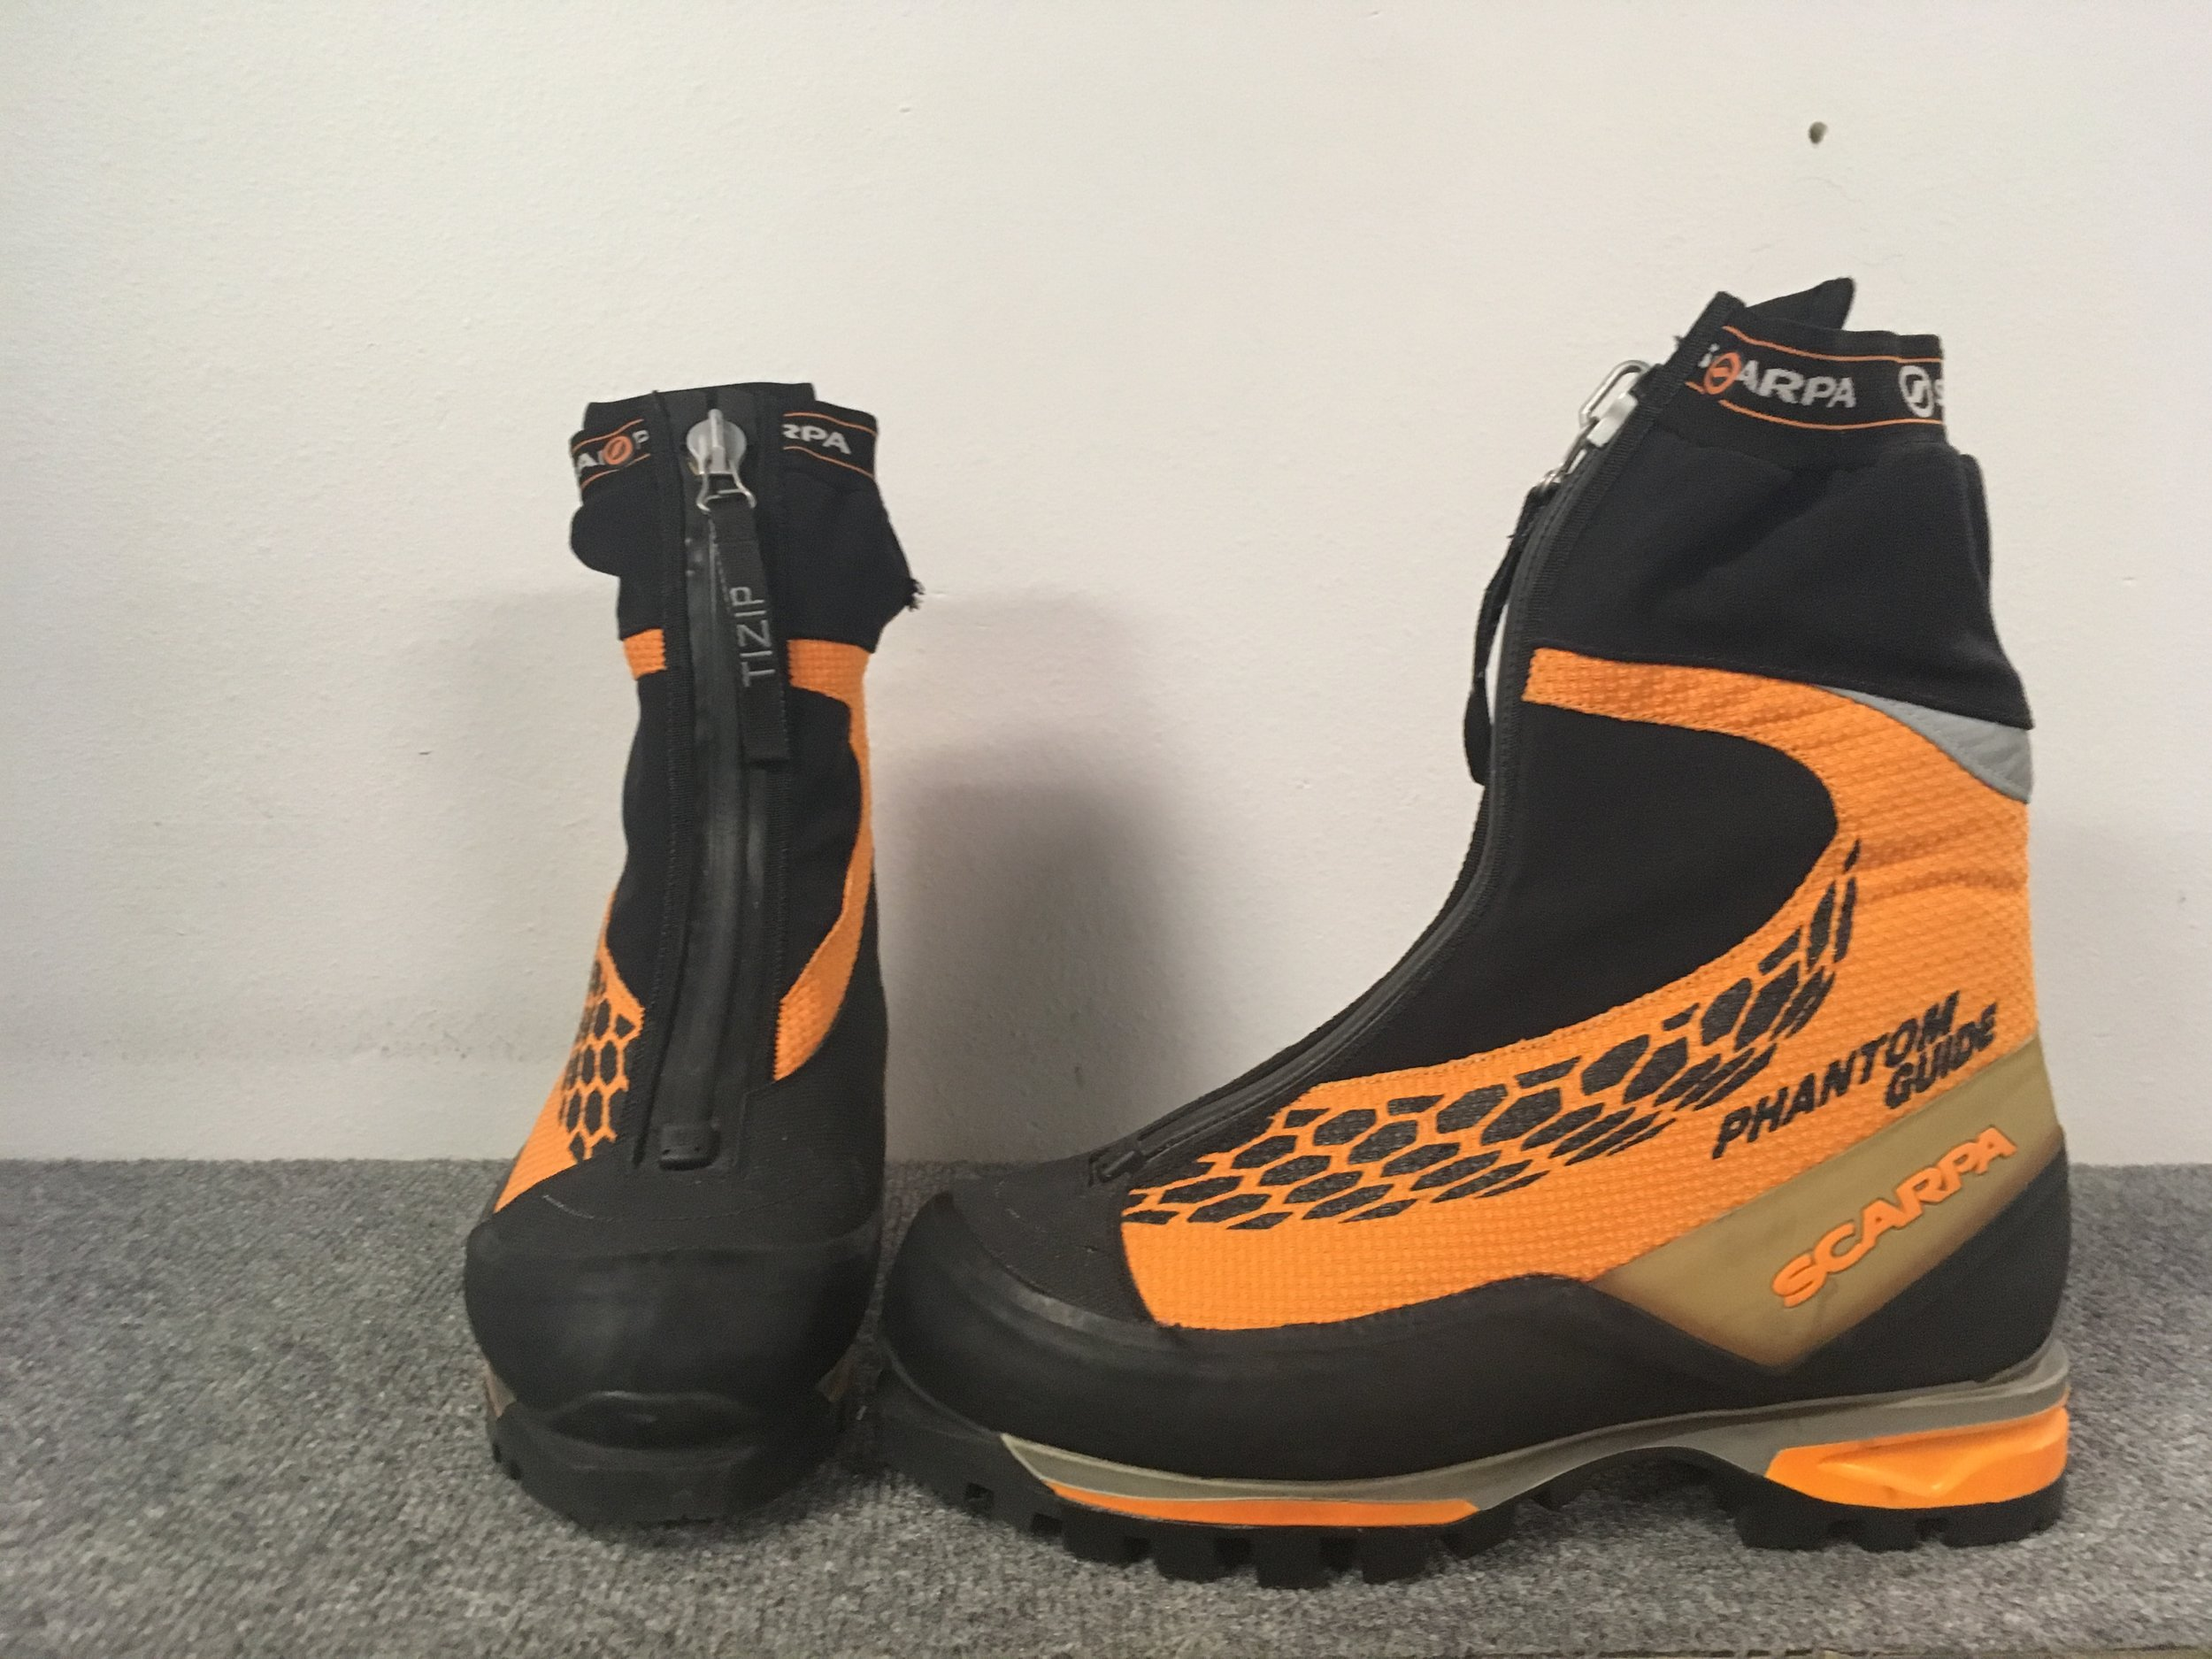 Climb high and stay warm and dry with Scarpa's Phantom Guide boot! Featuring 200 grams of primaloft insulation, Vibram soles, and TIZIP waterproof zippers the Phantom is virtually bombproof. Retail for the pair is listed at $629 but we can get you climbing for $274! The size is a Euro 42.